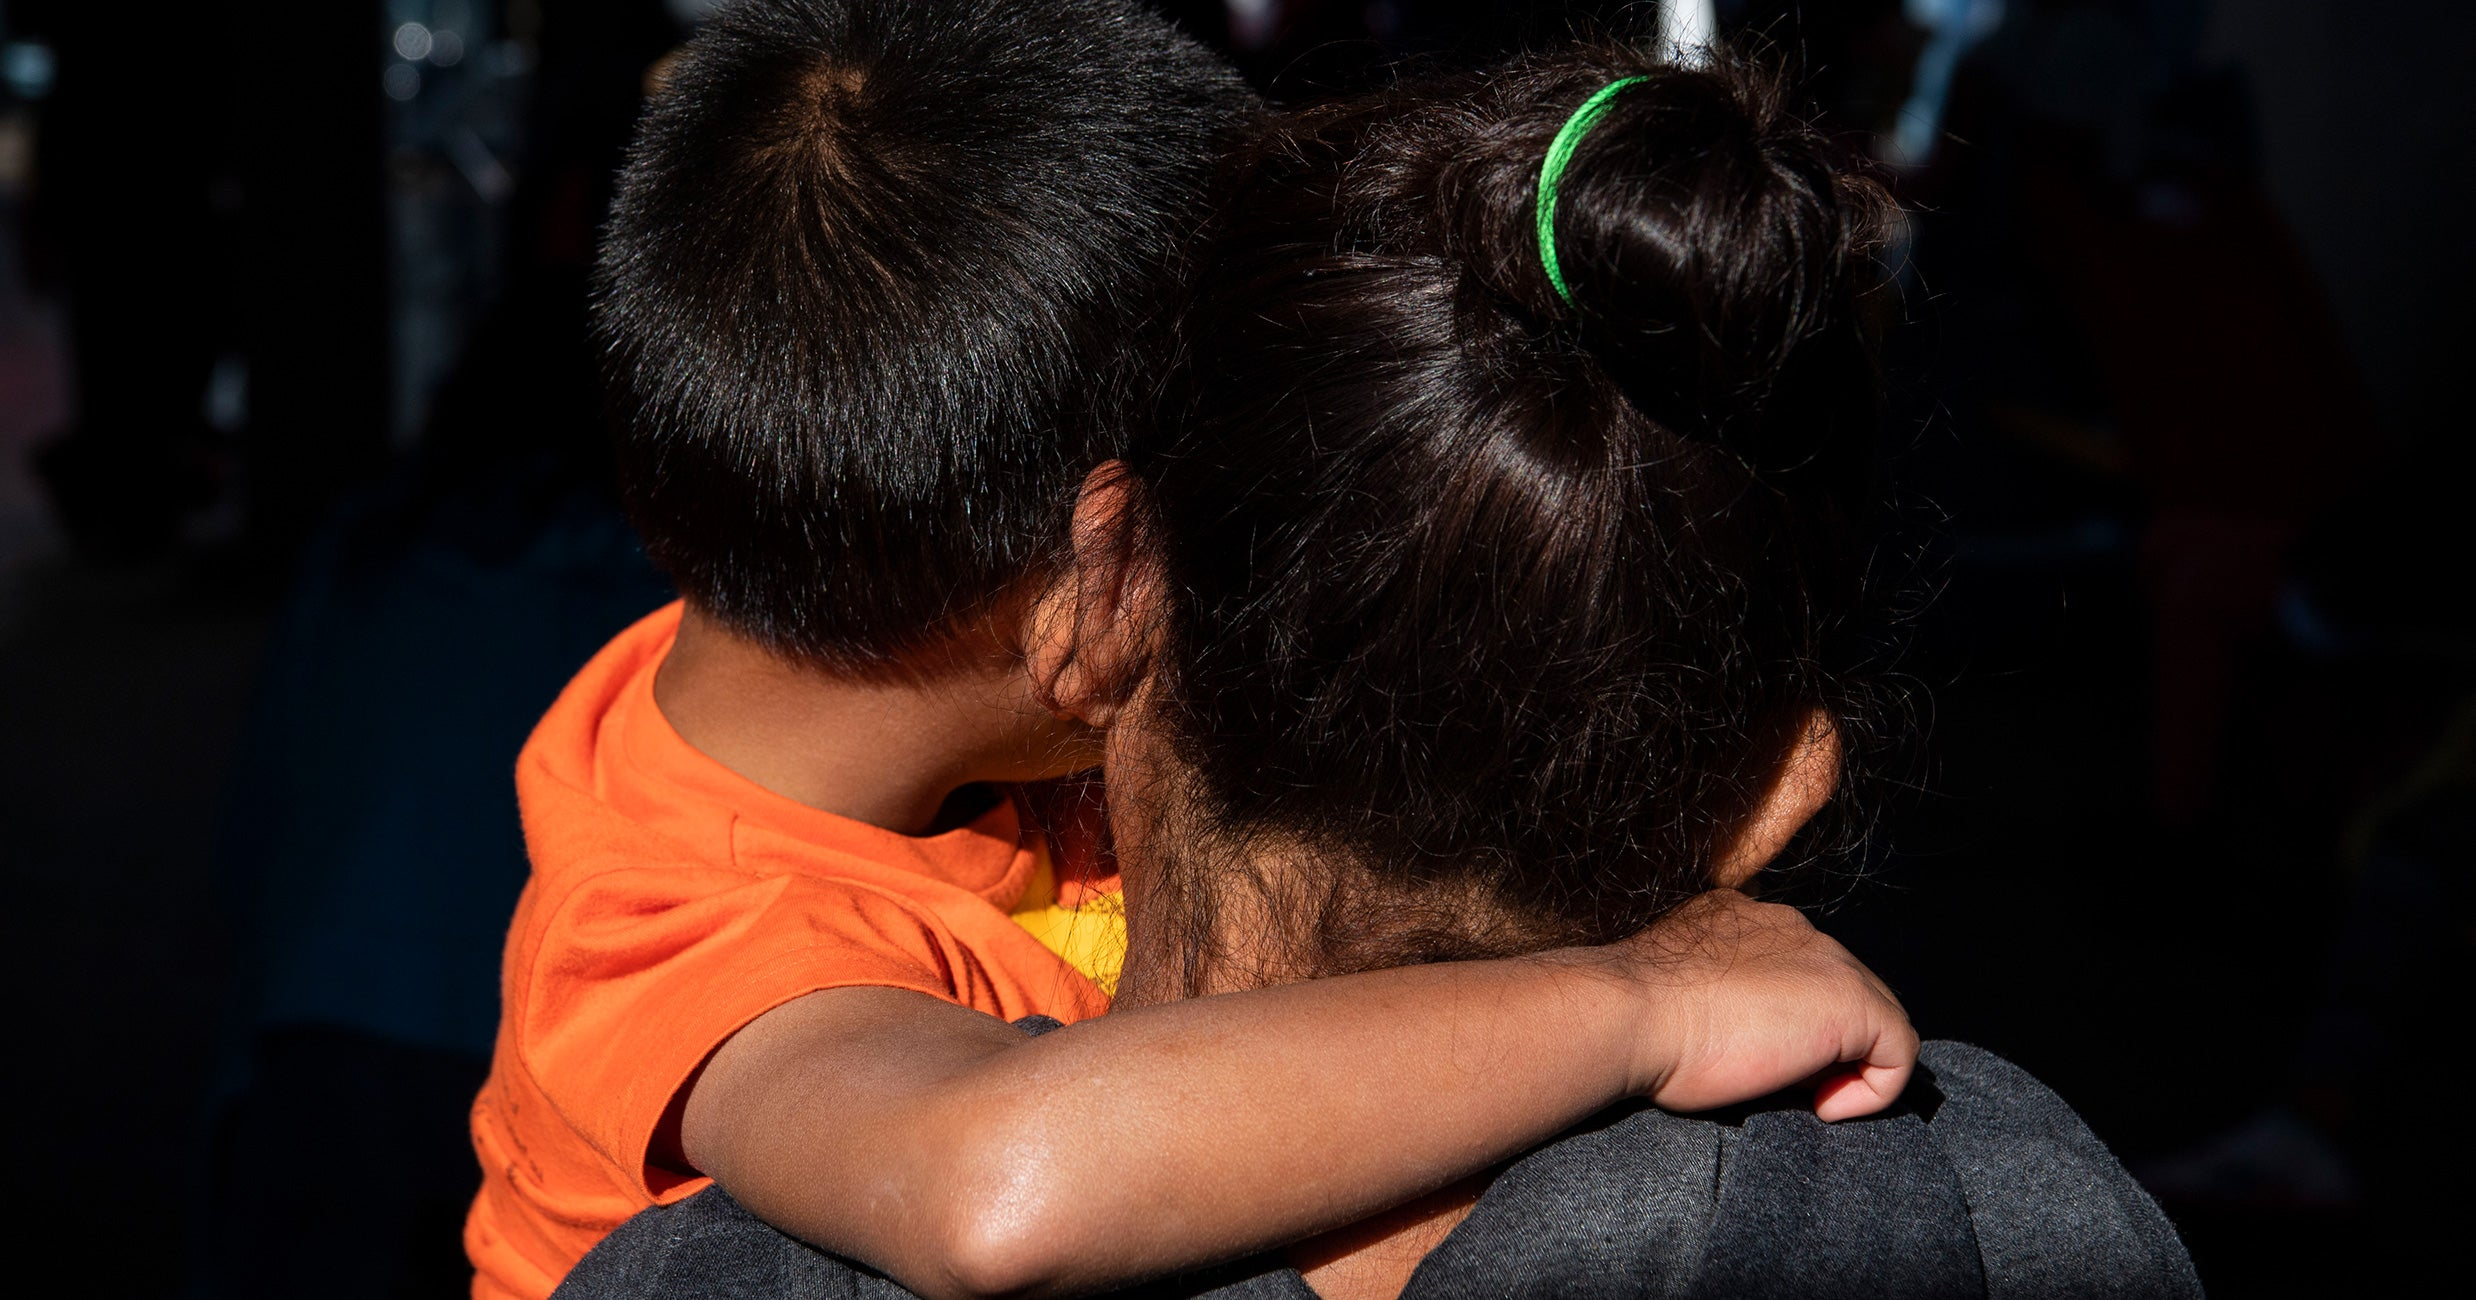 www.refinery29.com: Trump Separated Thousands Of Families. Now, 545 Migrant Children Can't Find Their Parents.